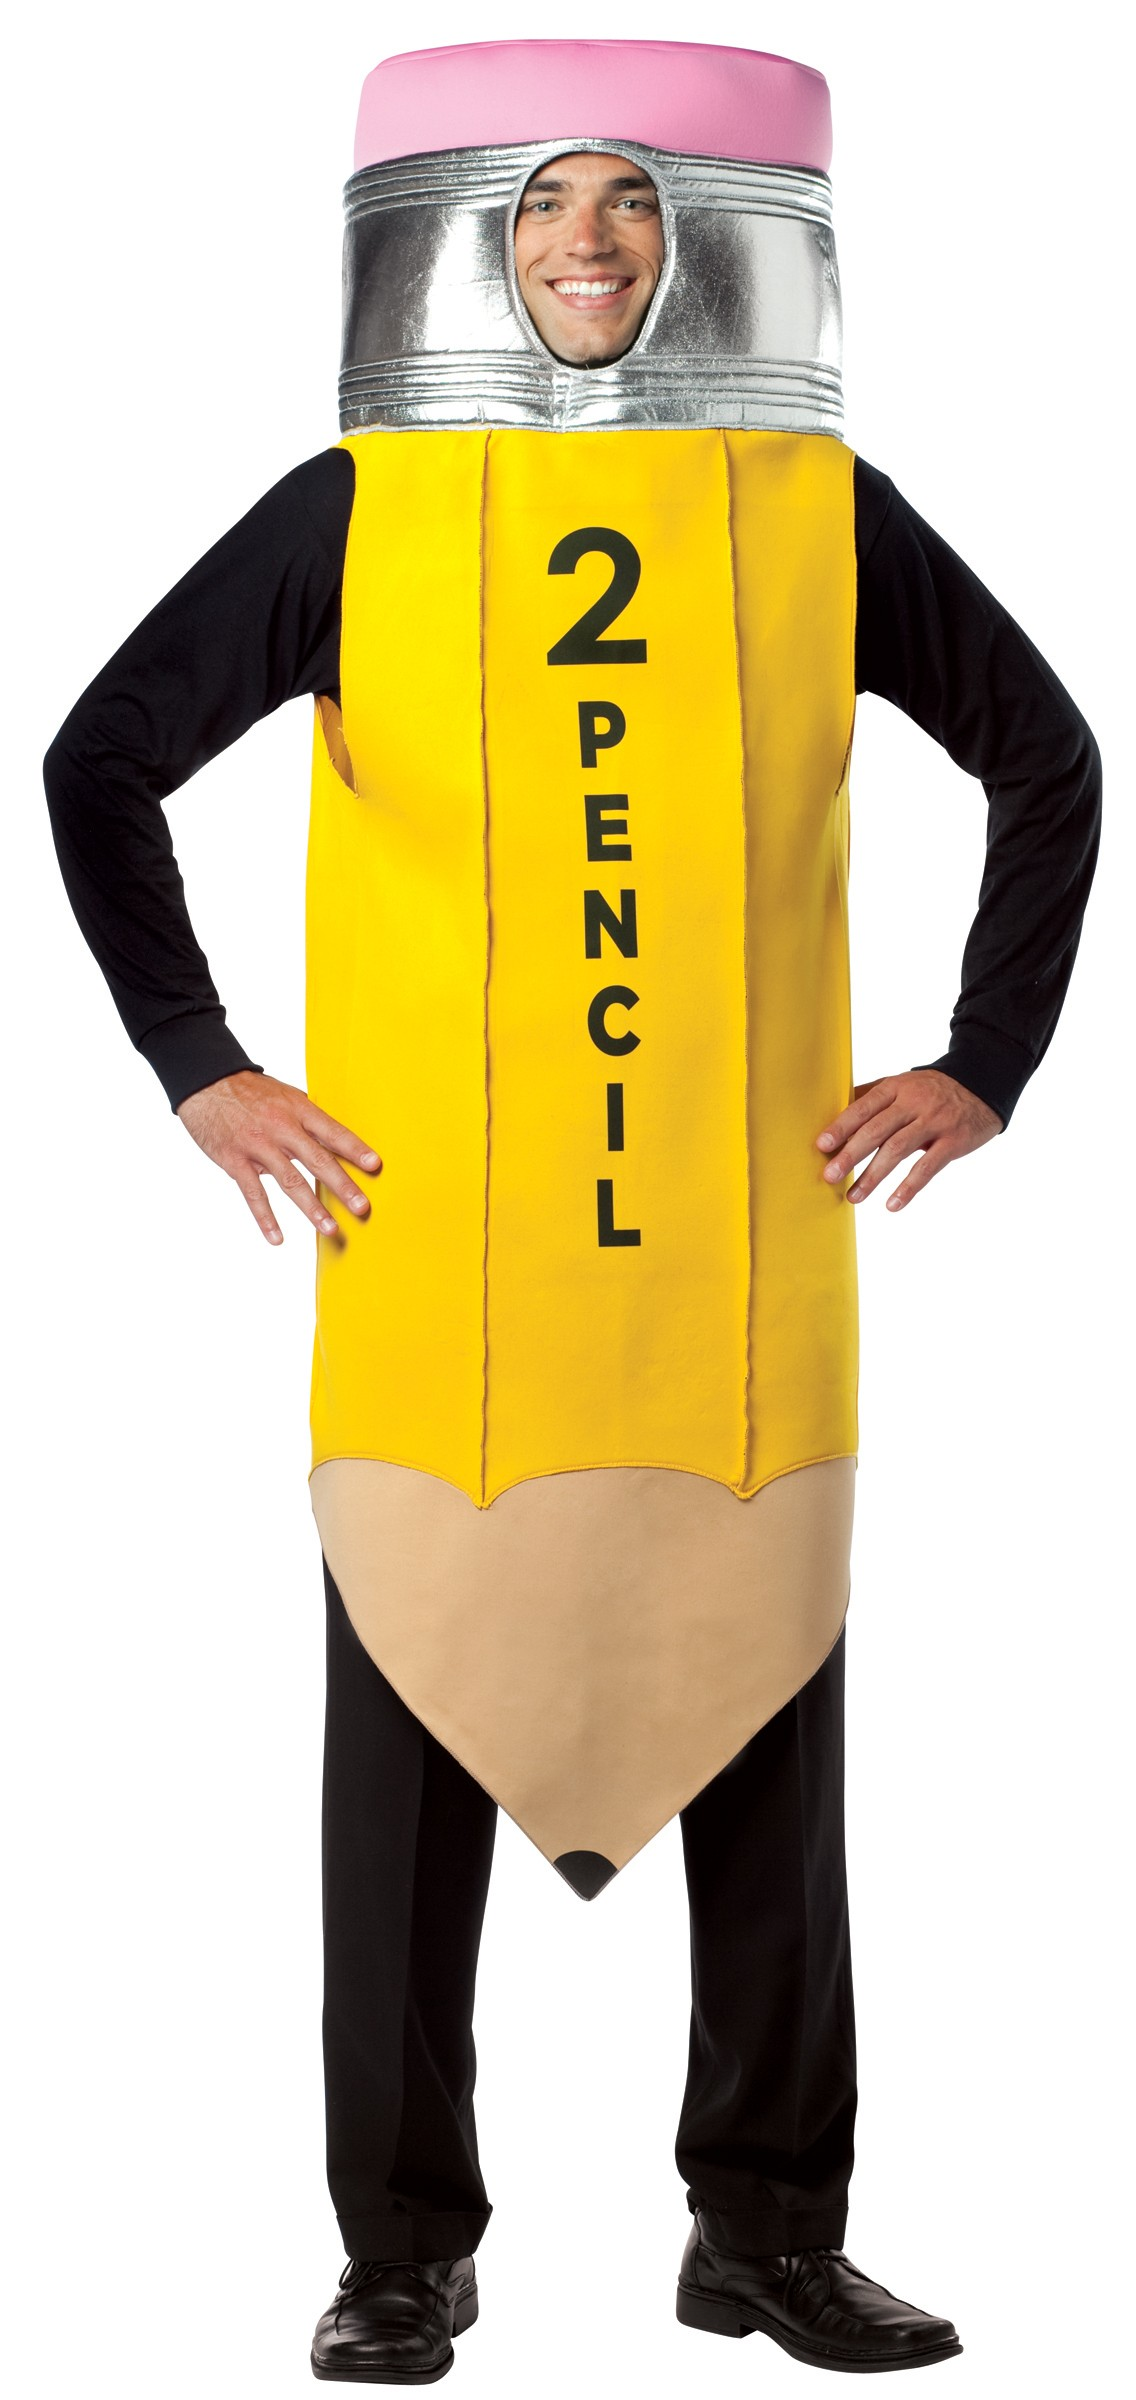 Costumes australia buy costumes for kids adults costumes 2 pencil adult costume solutioingenieria Image collections